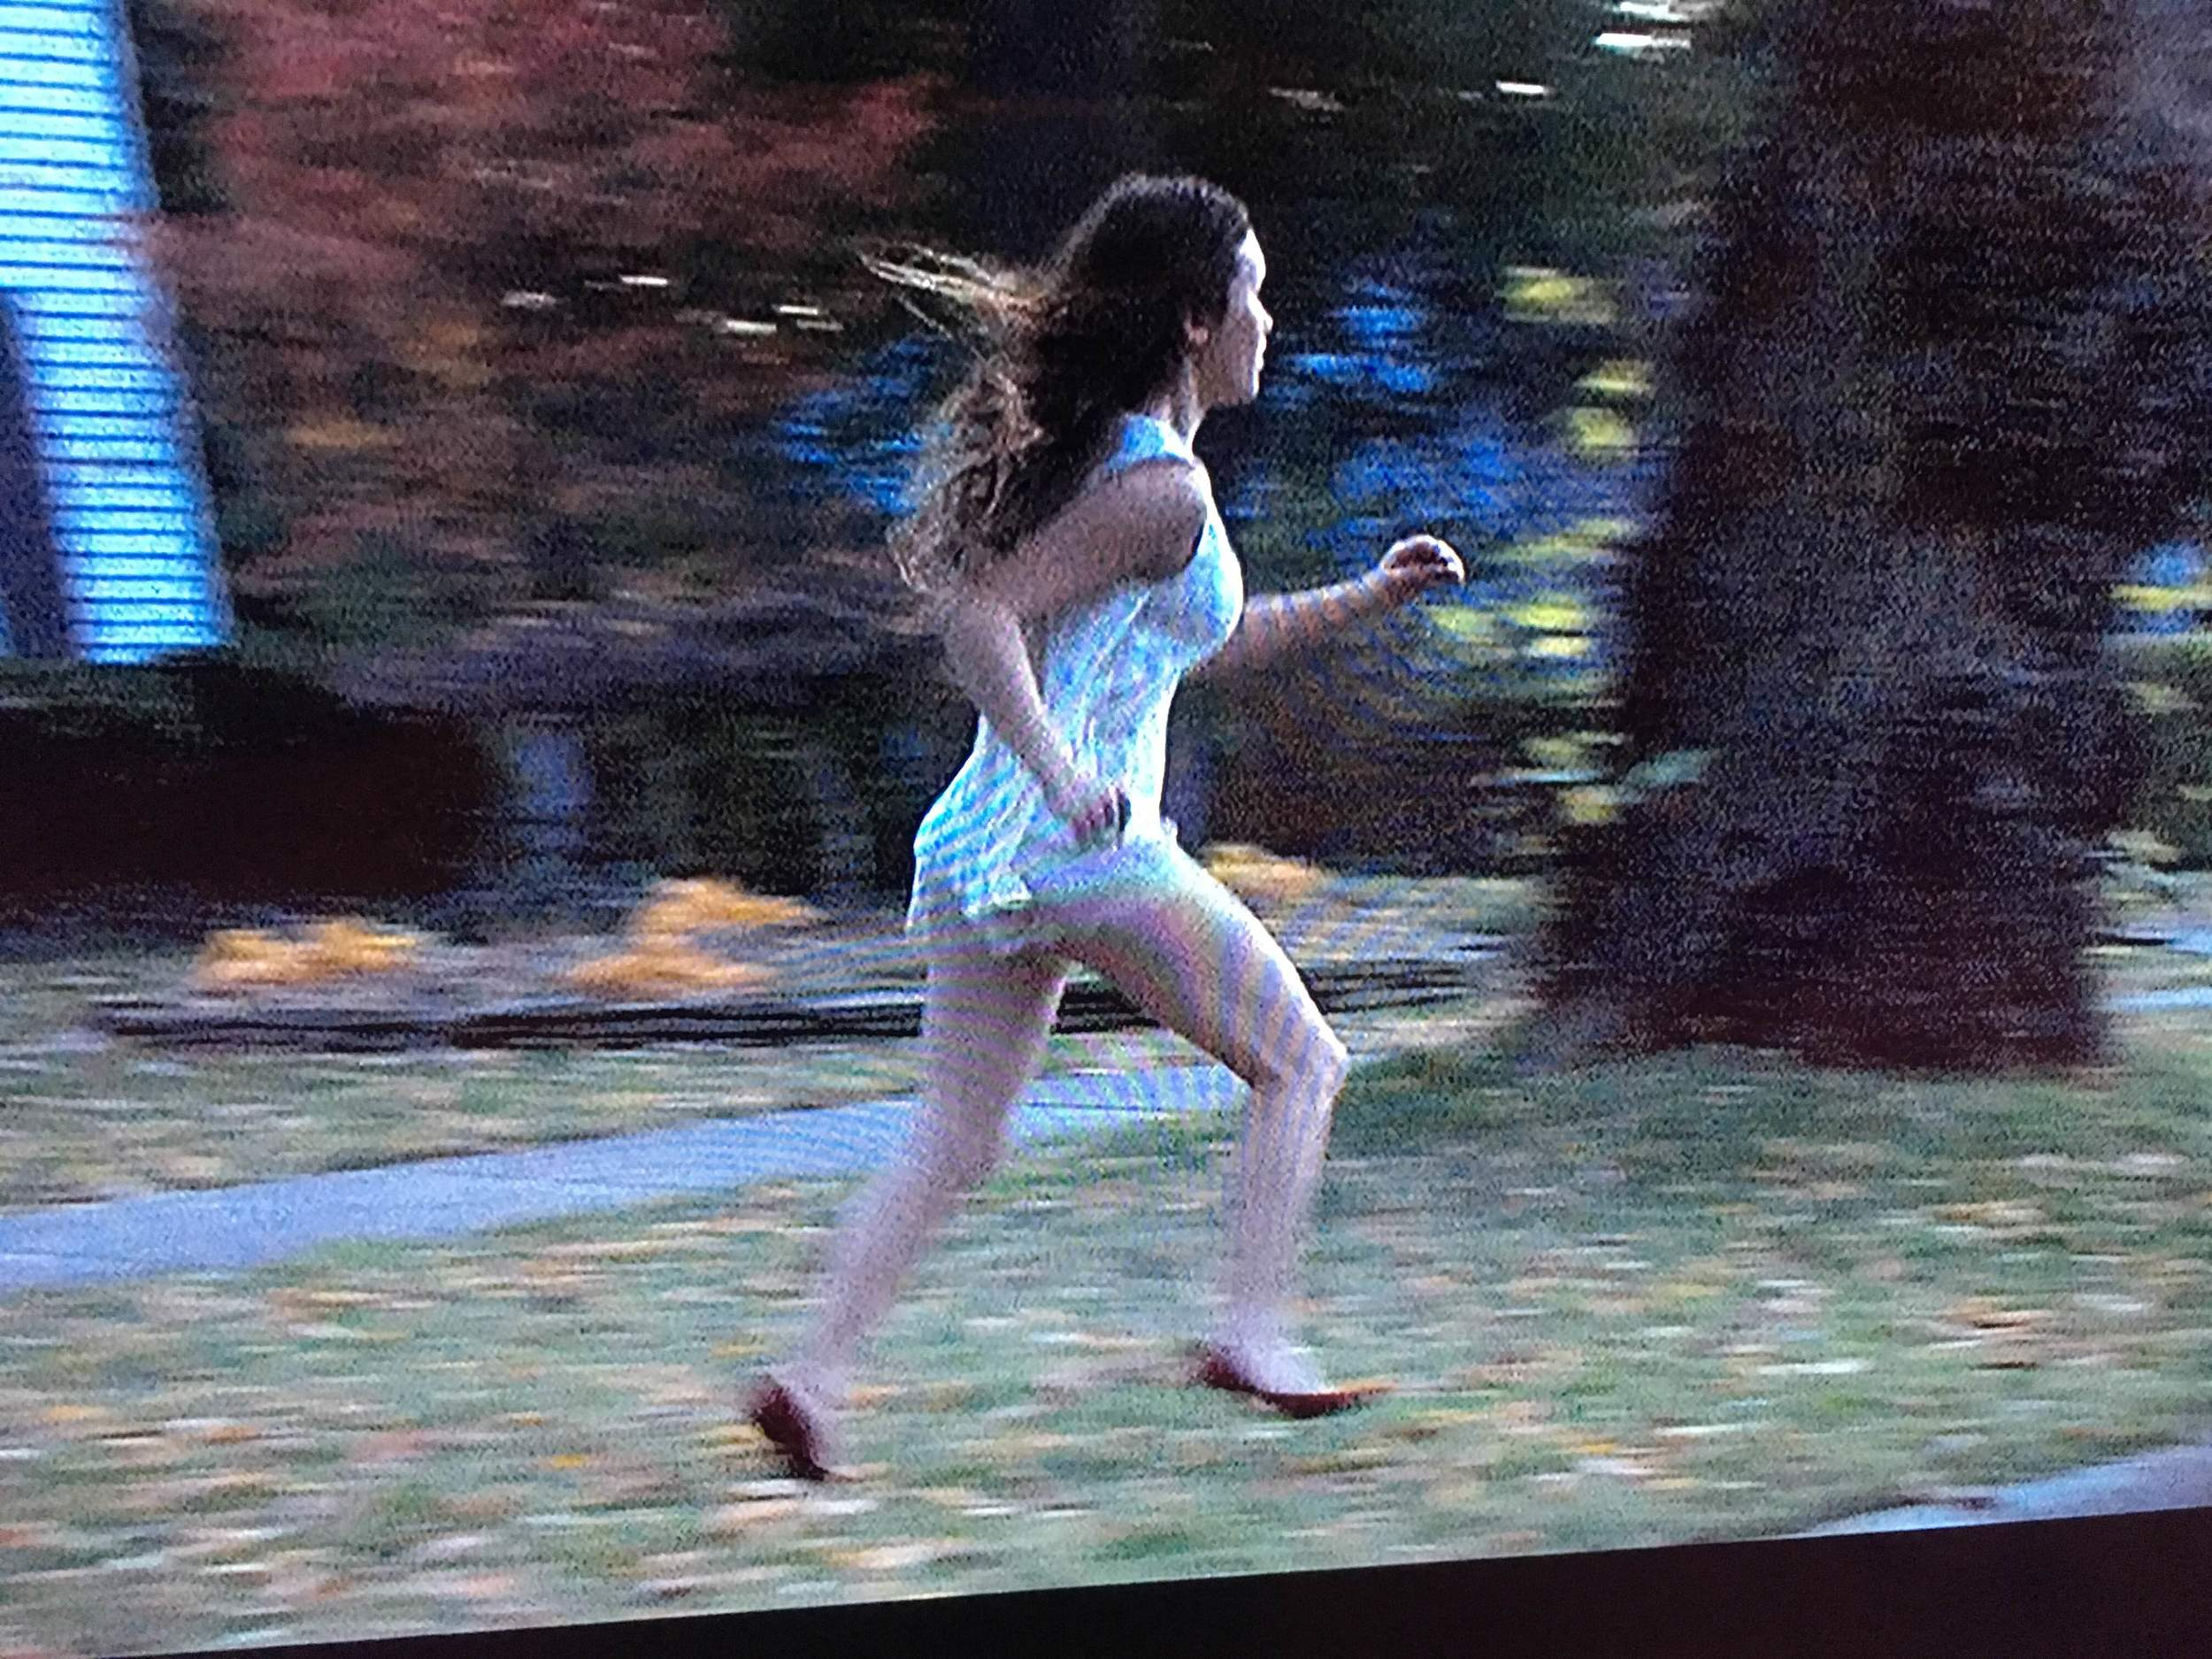 Great bod, but killing this girl off in the first five minutes made the whole movie confusing